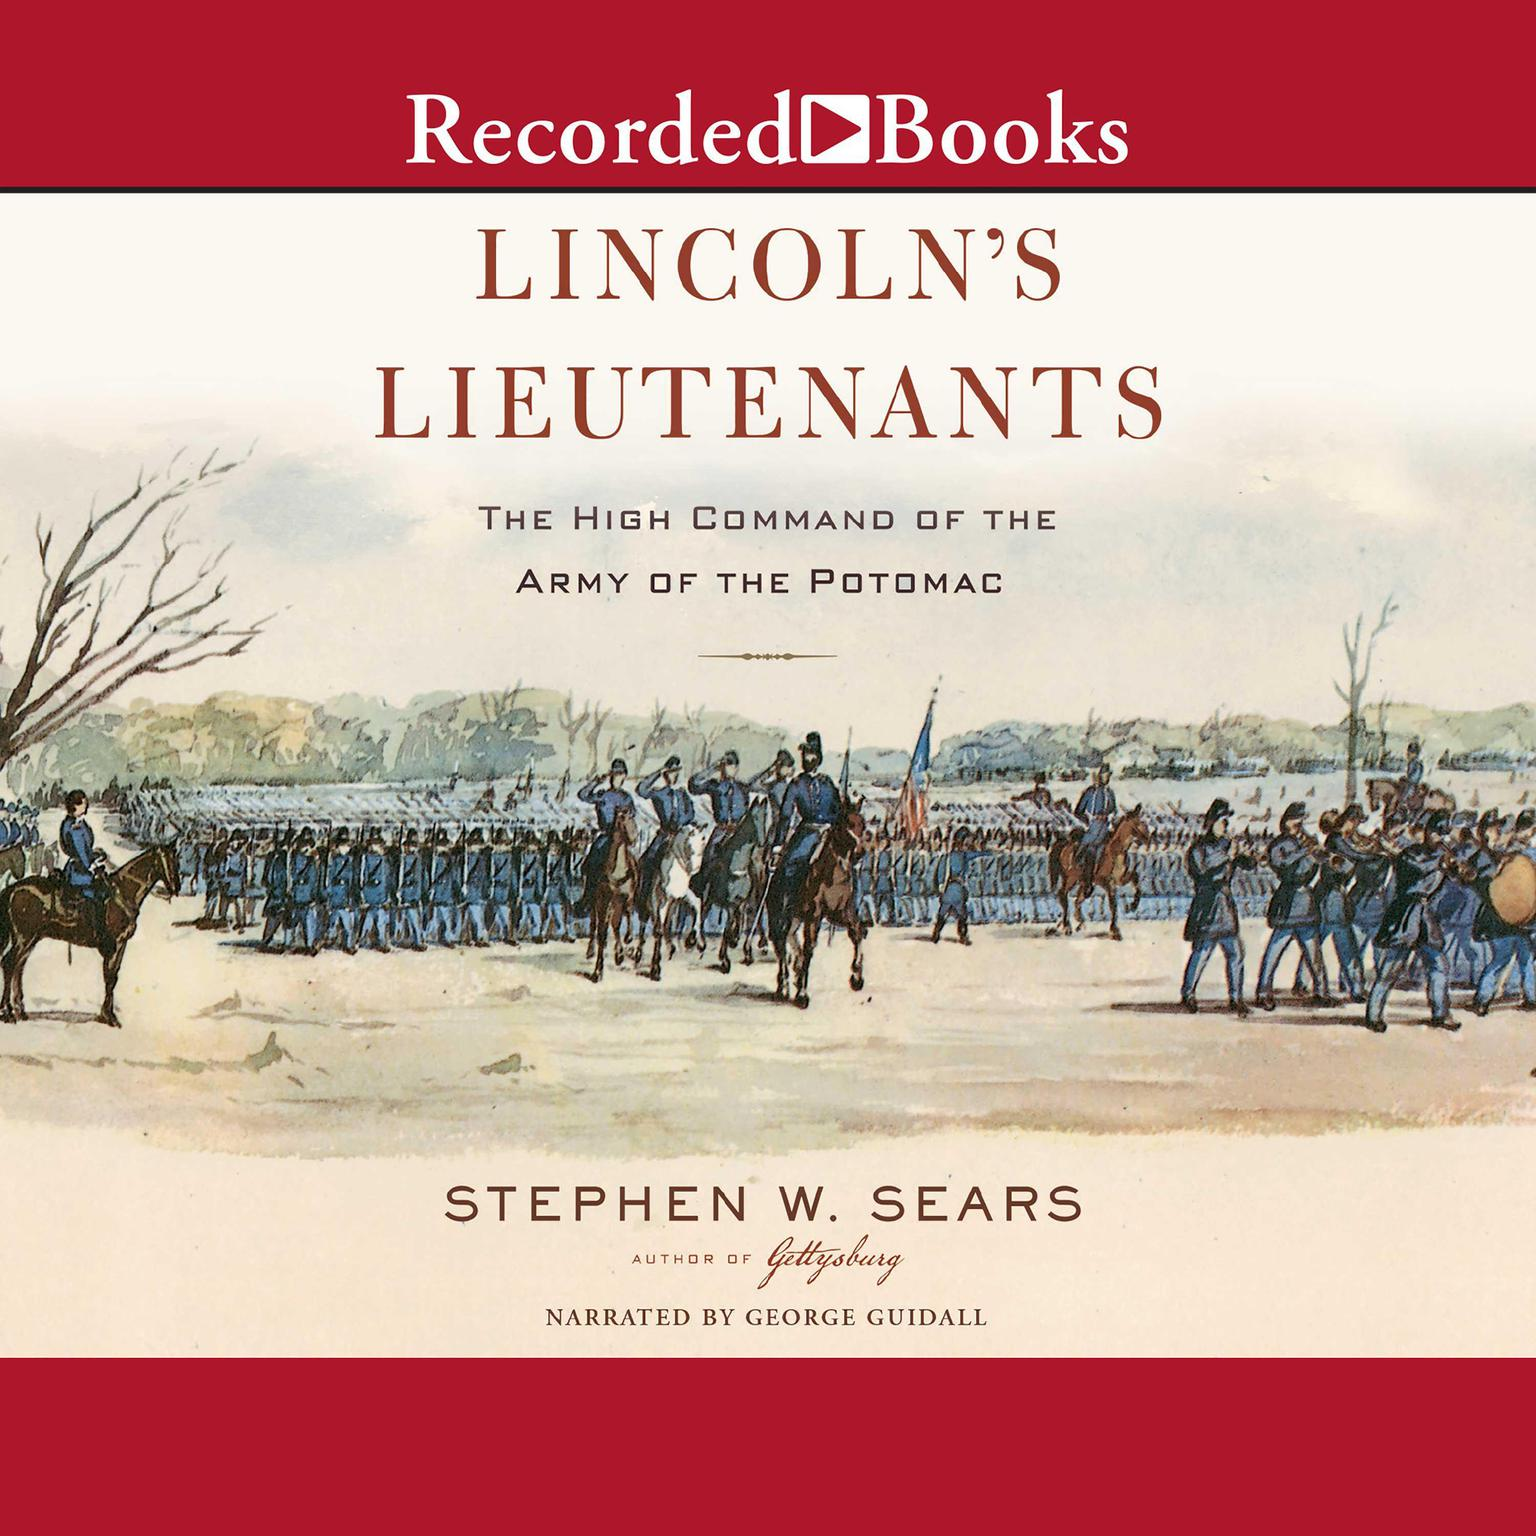 Lincolns Lieutenants: The High Command of the Army of the Potomac Audiobook, by Stephen W. Sears